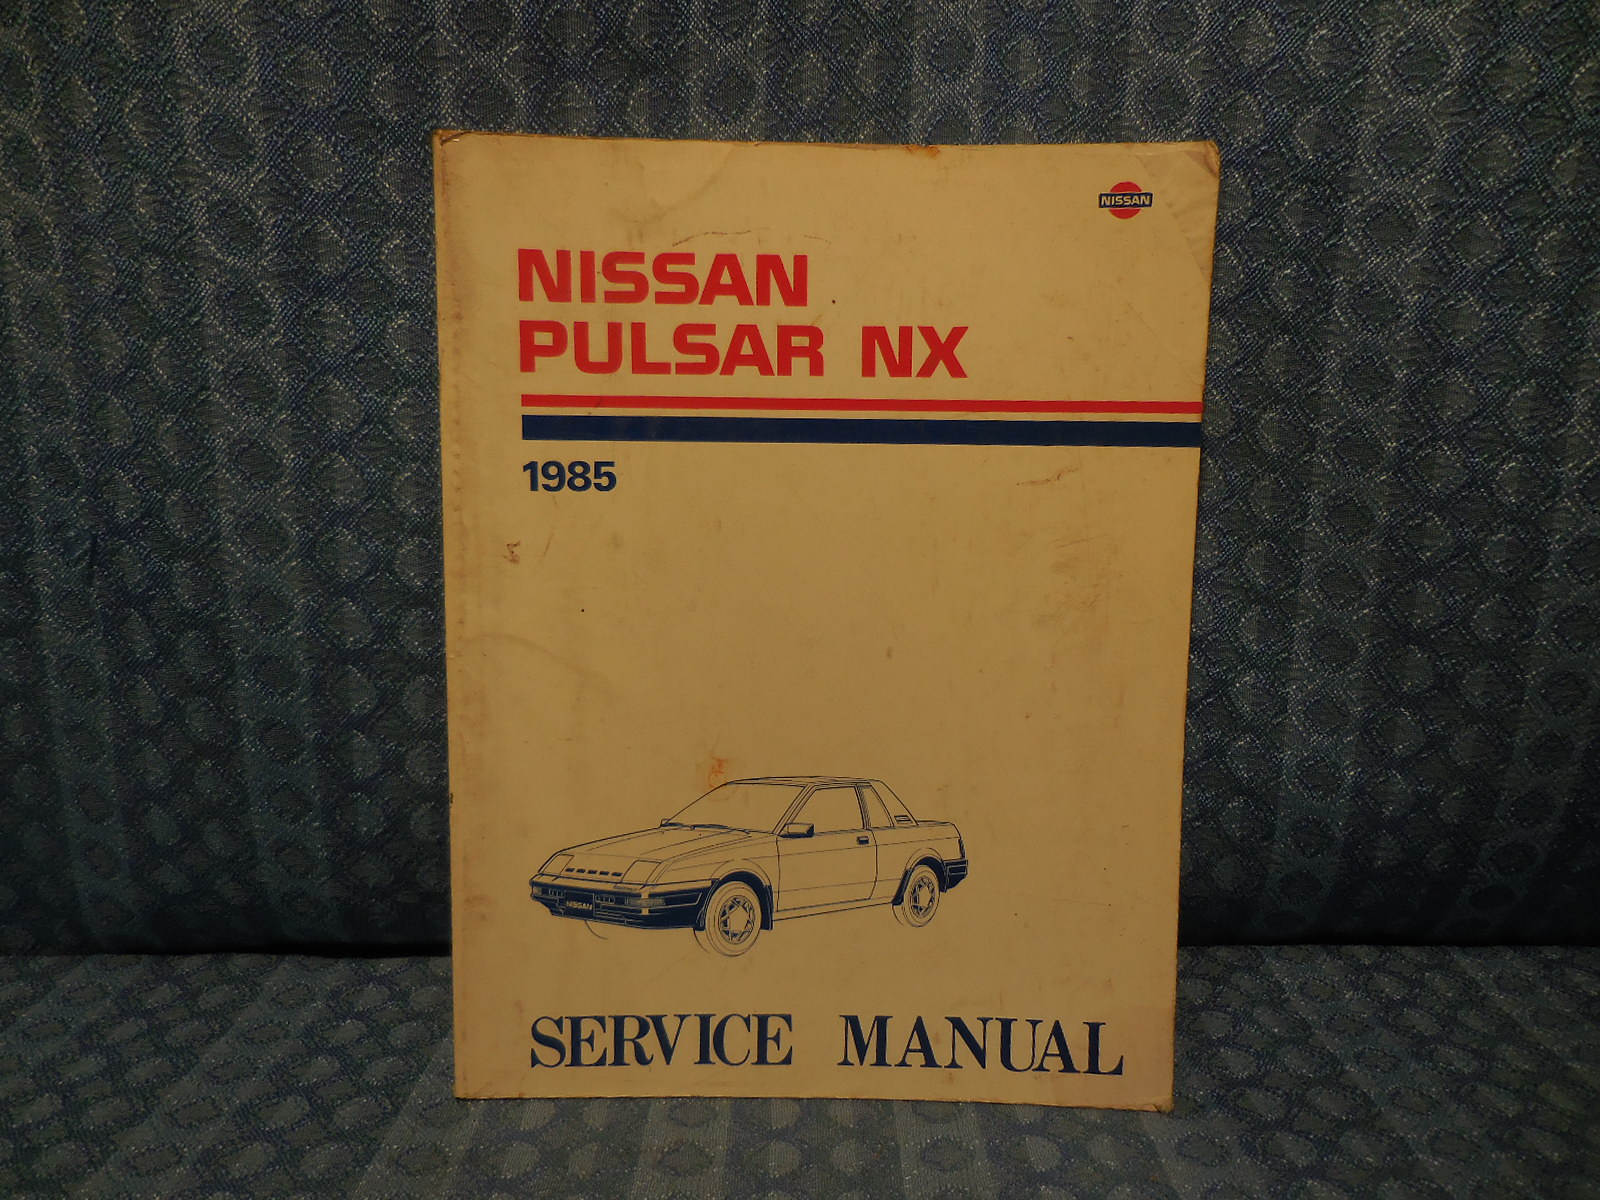 Original OEM Shop Service Manual Covers 1985 Nissan Pulsar NX